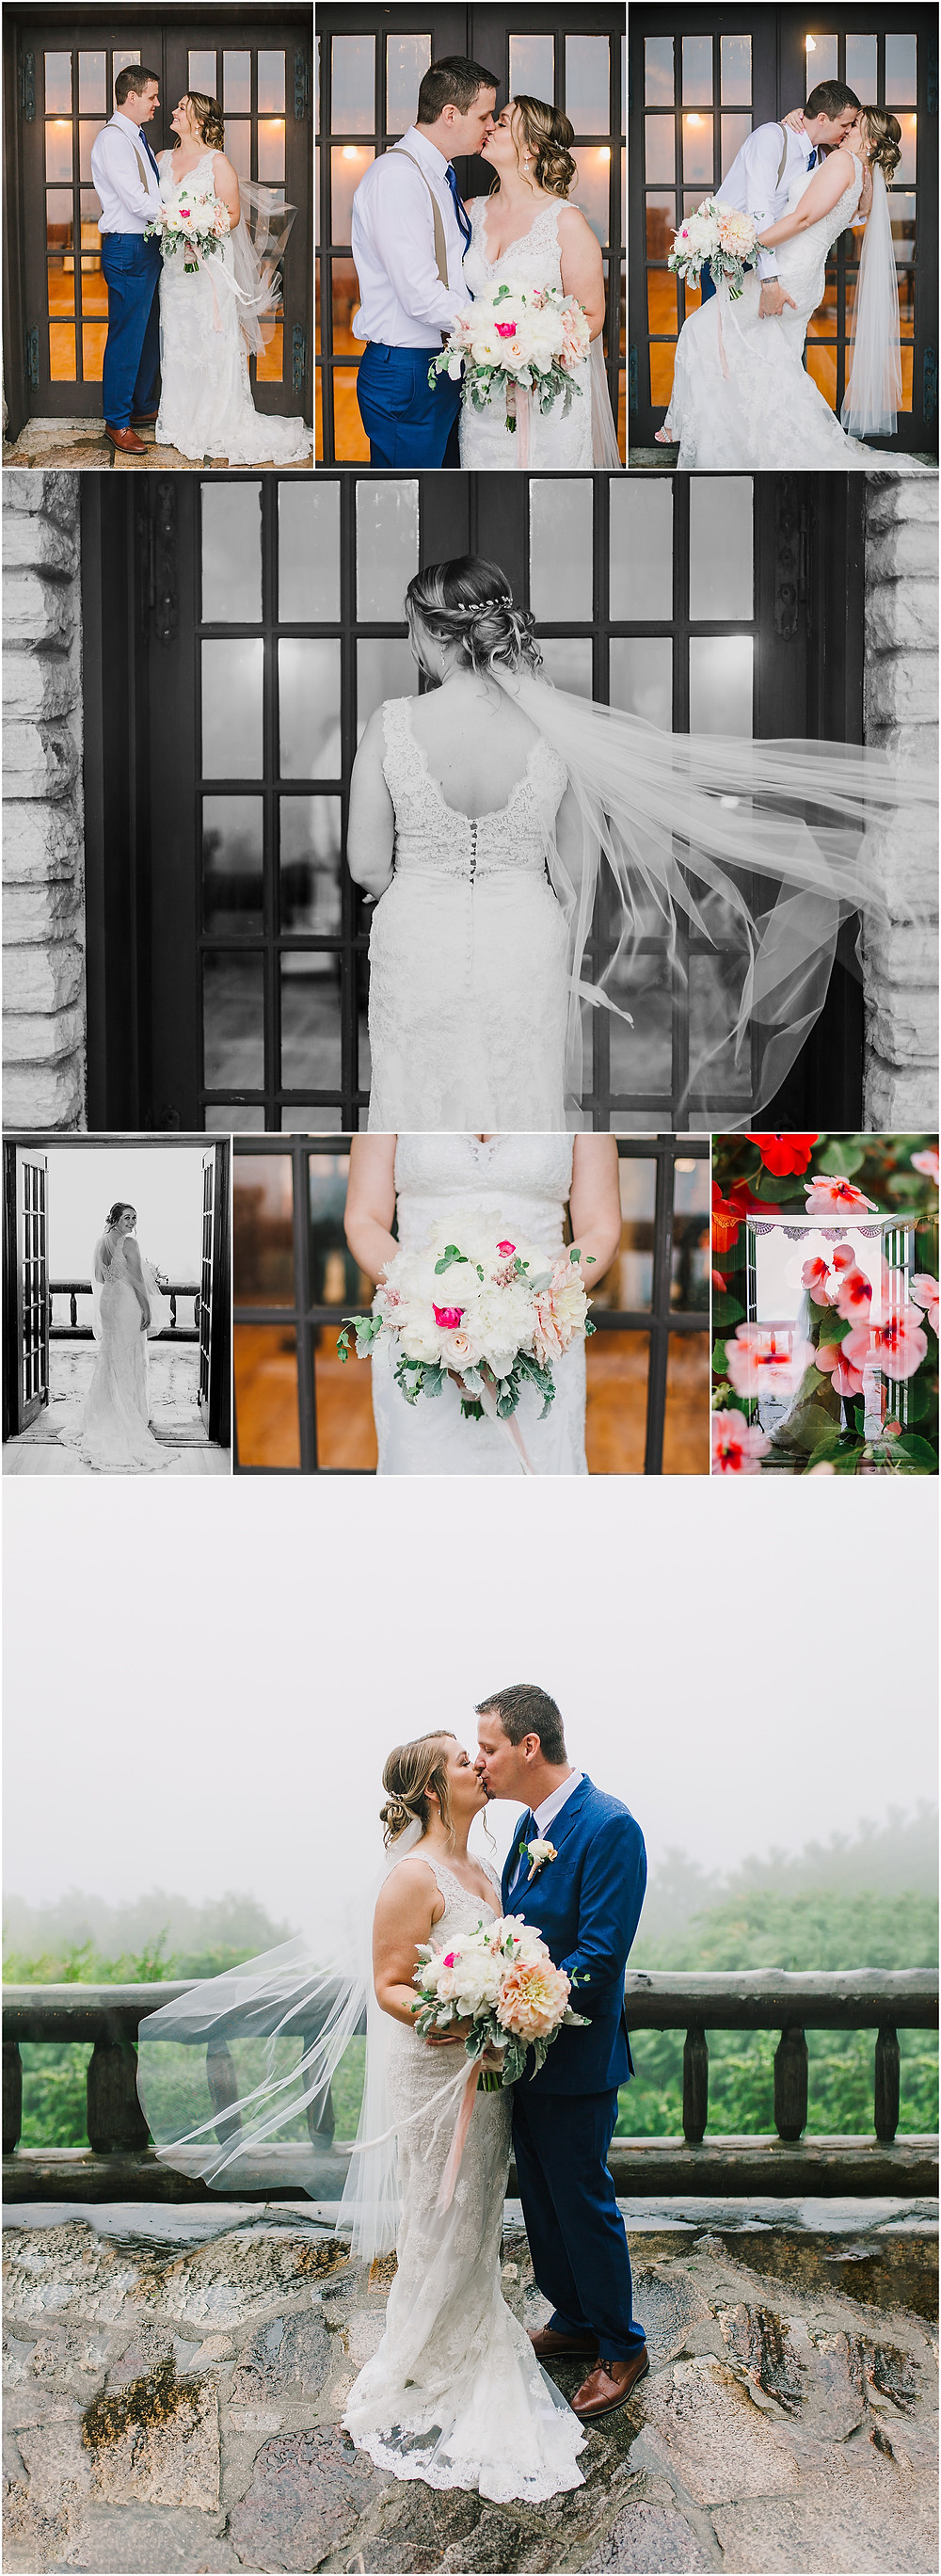 Rainy Portraits at the Tea Room at Gambrill State Park - Frederick Wedding Photographer